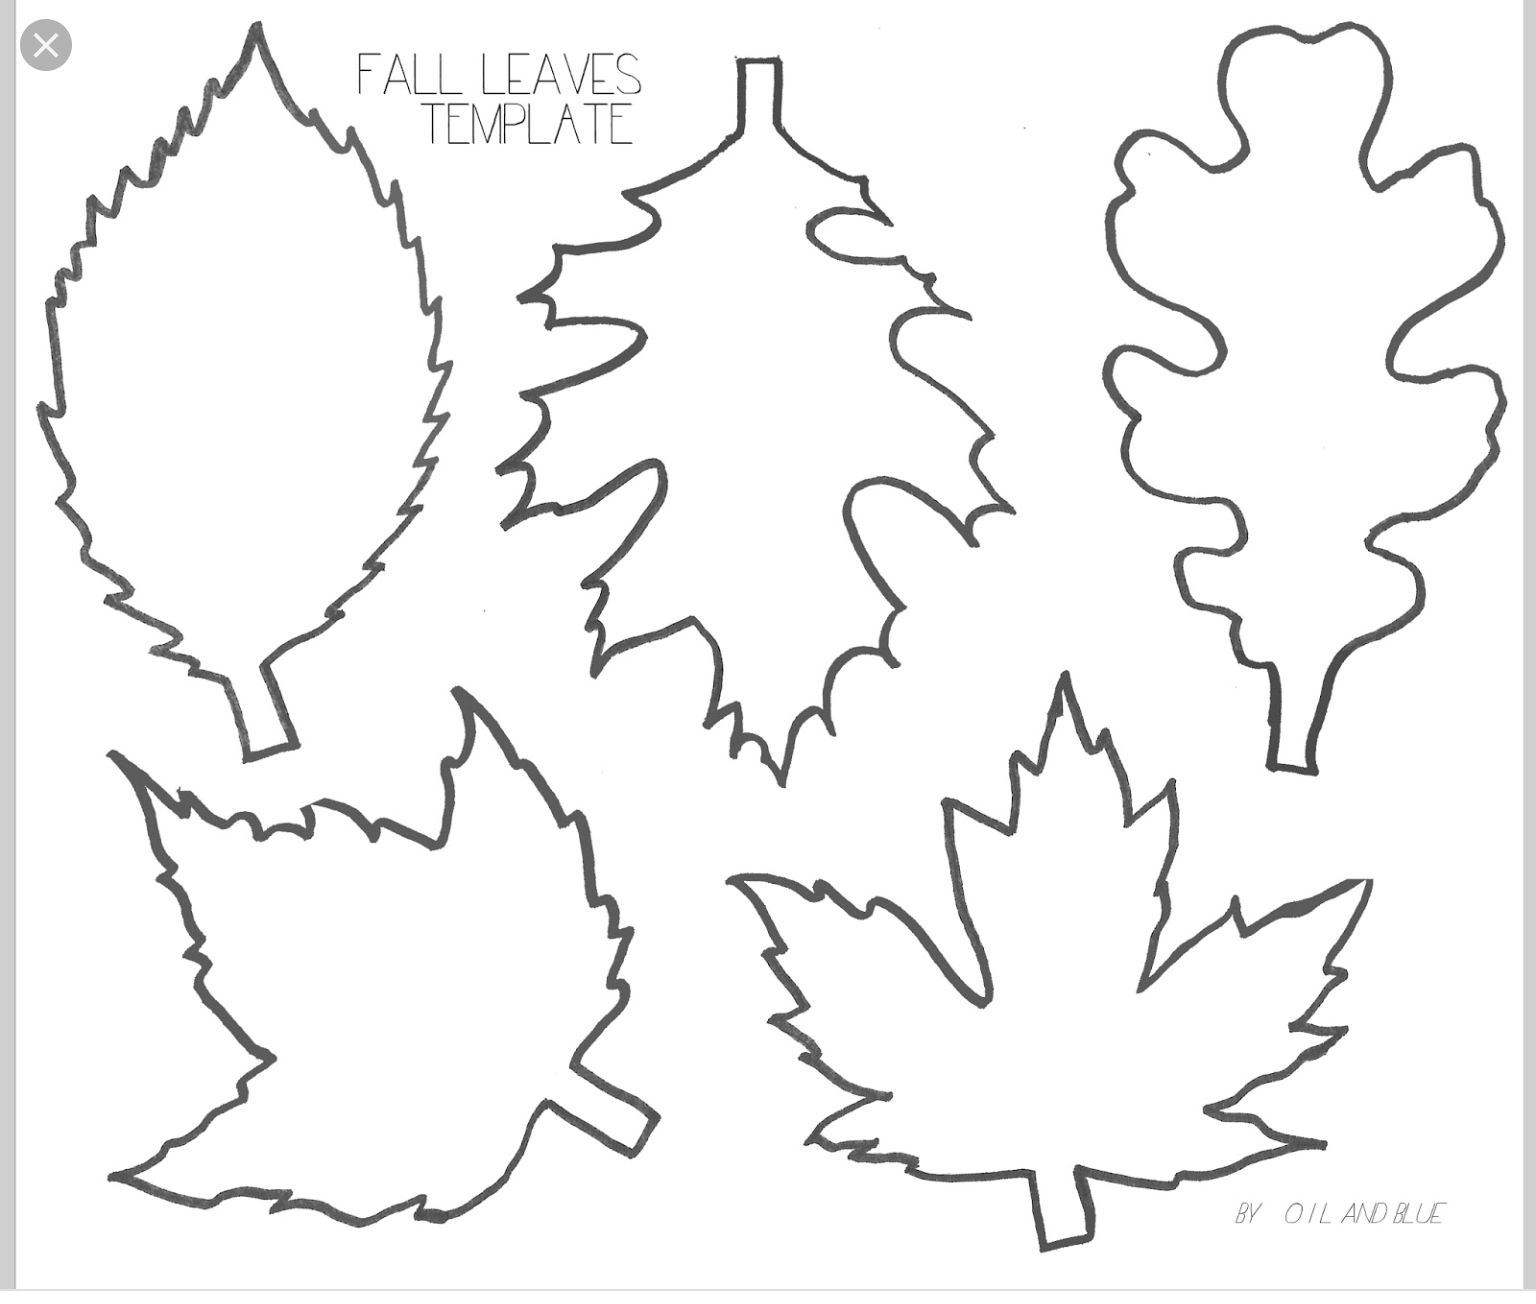 Pin by Lucie Davis on Skolka worksheets | Leaf template ...